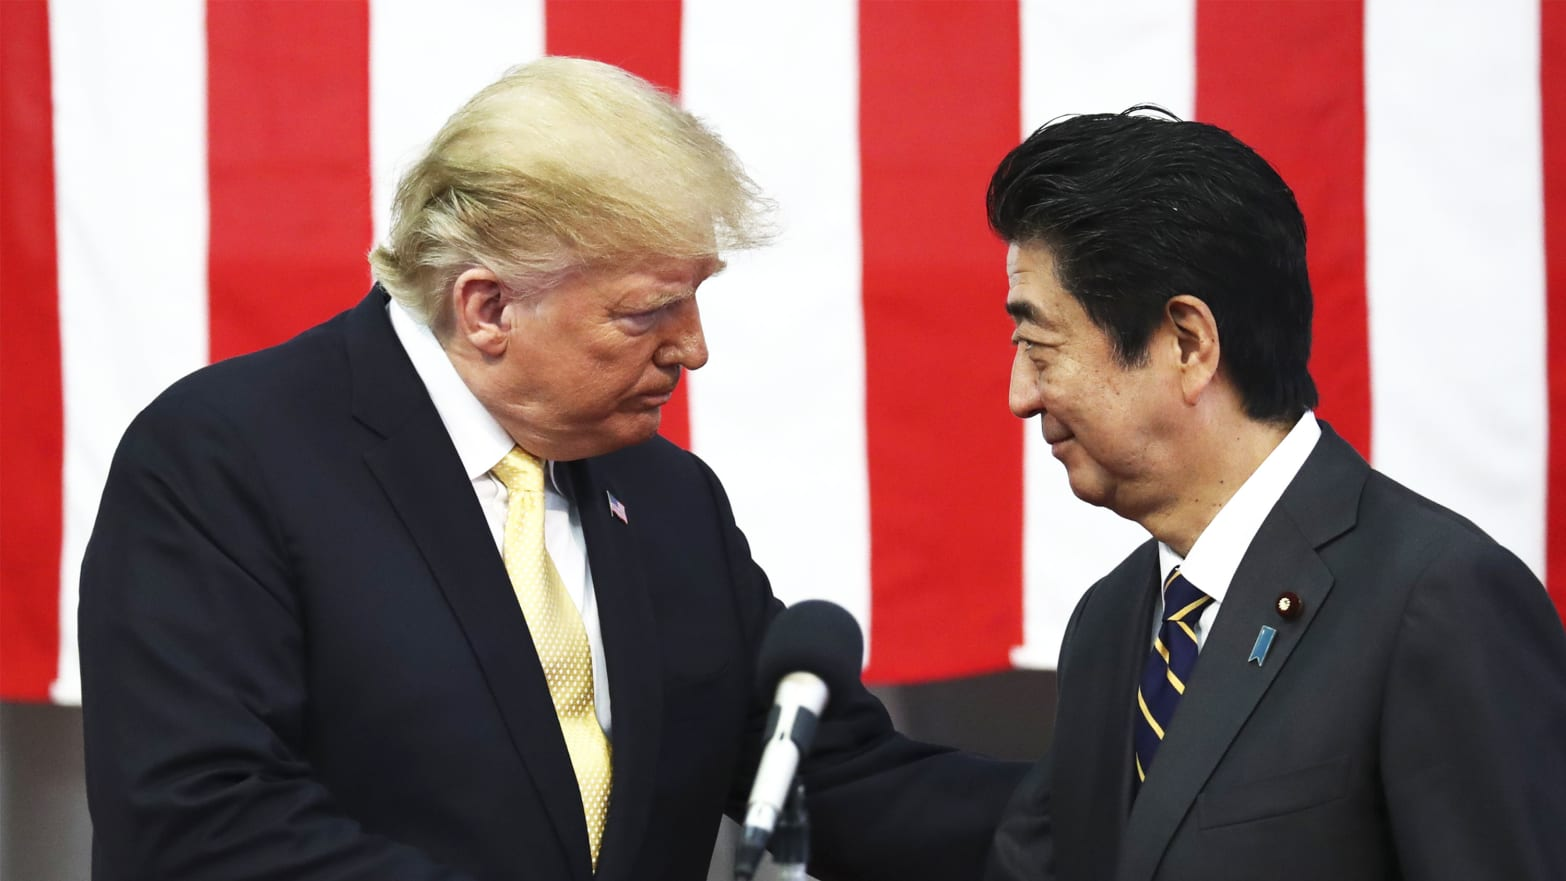 Not So Fast, Shinzo Abe! Trump's Tricky Bromance With Japan's PM